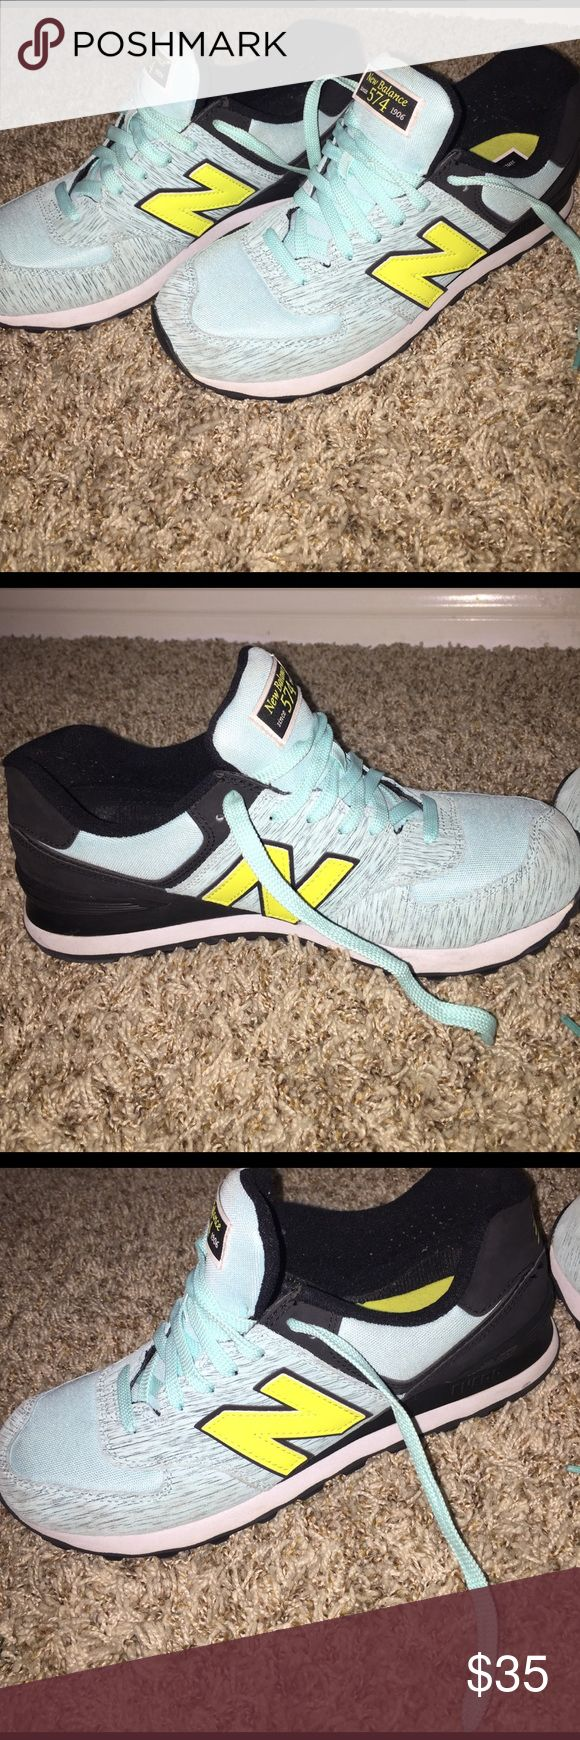 Women's 574 New Balances Light blue, neon, and black New Balance Shoes Sneakers